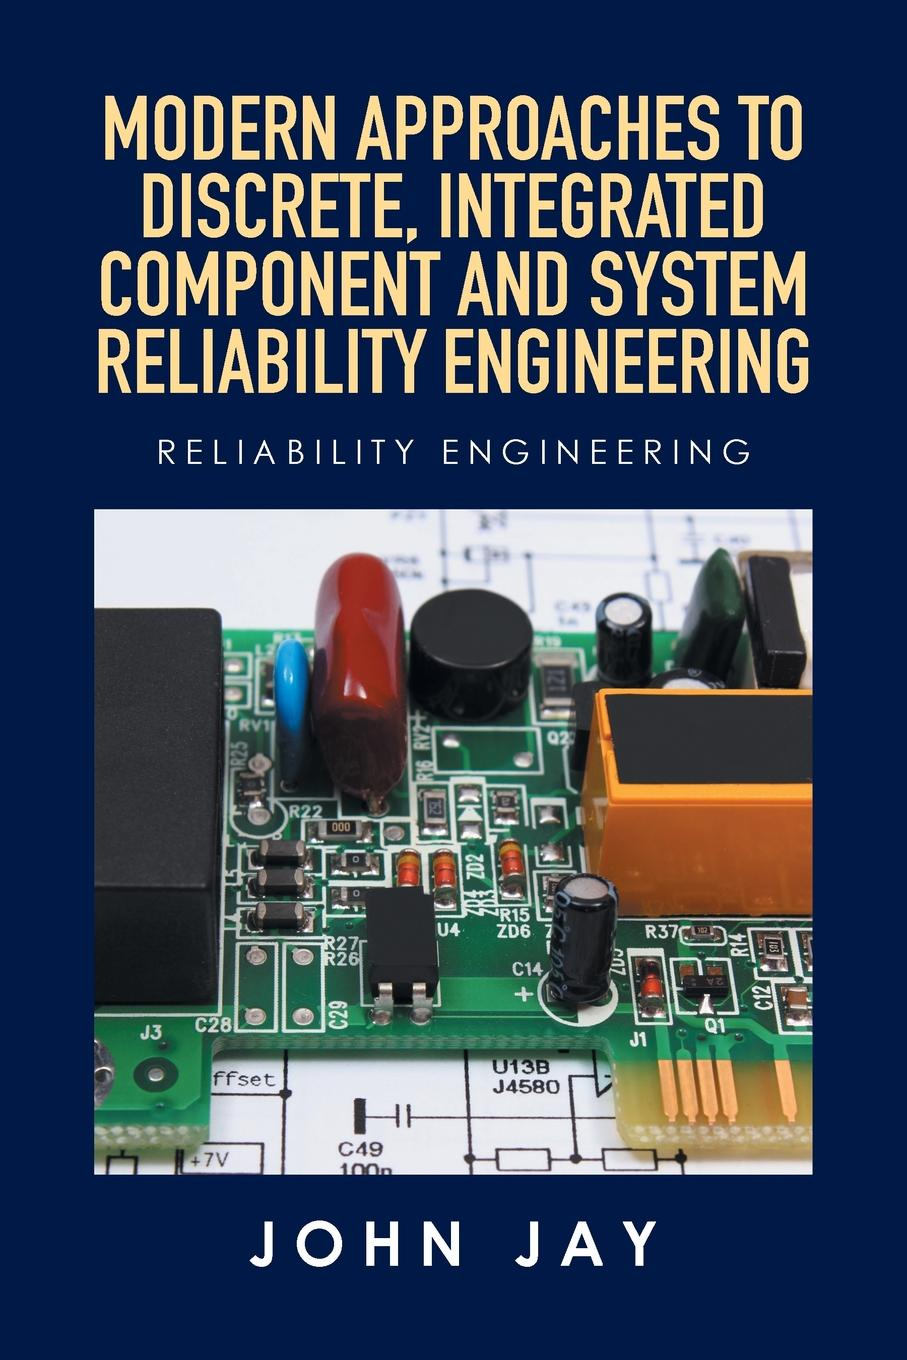 John Jay MODERN APPROACHES TO DISCRETE, INTEGRATED COMPONENT AND SYSTEM RELIABILITY ENGINEERING. Reliability Engineering